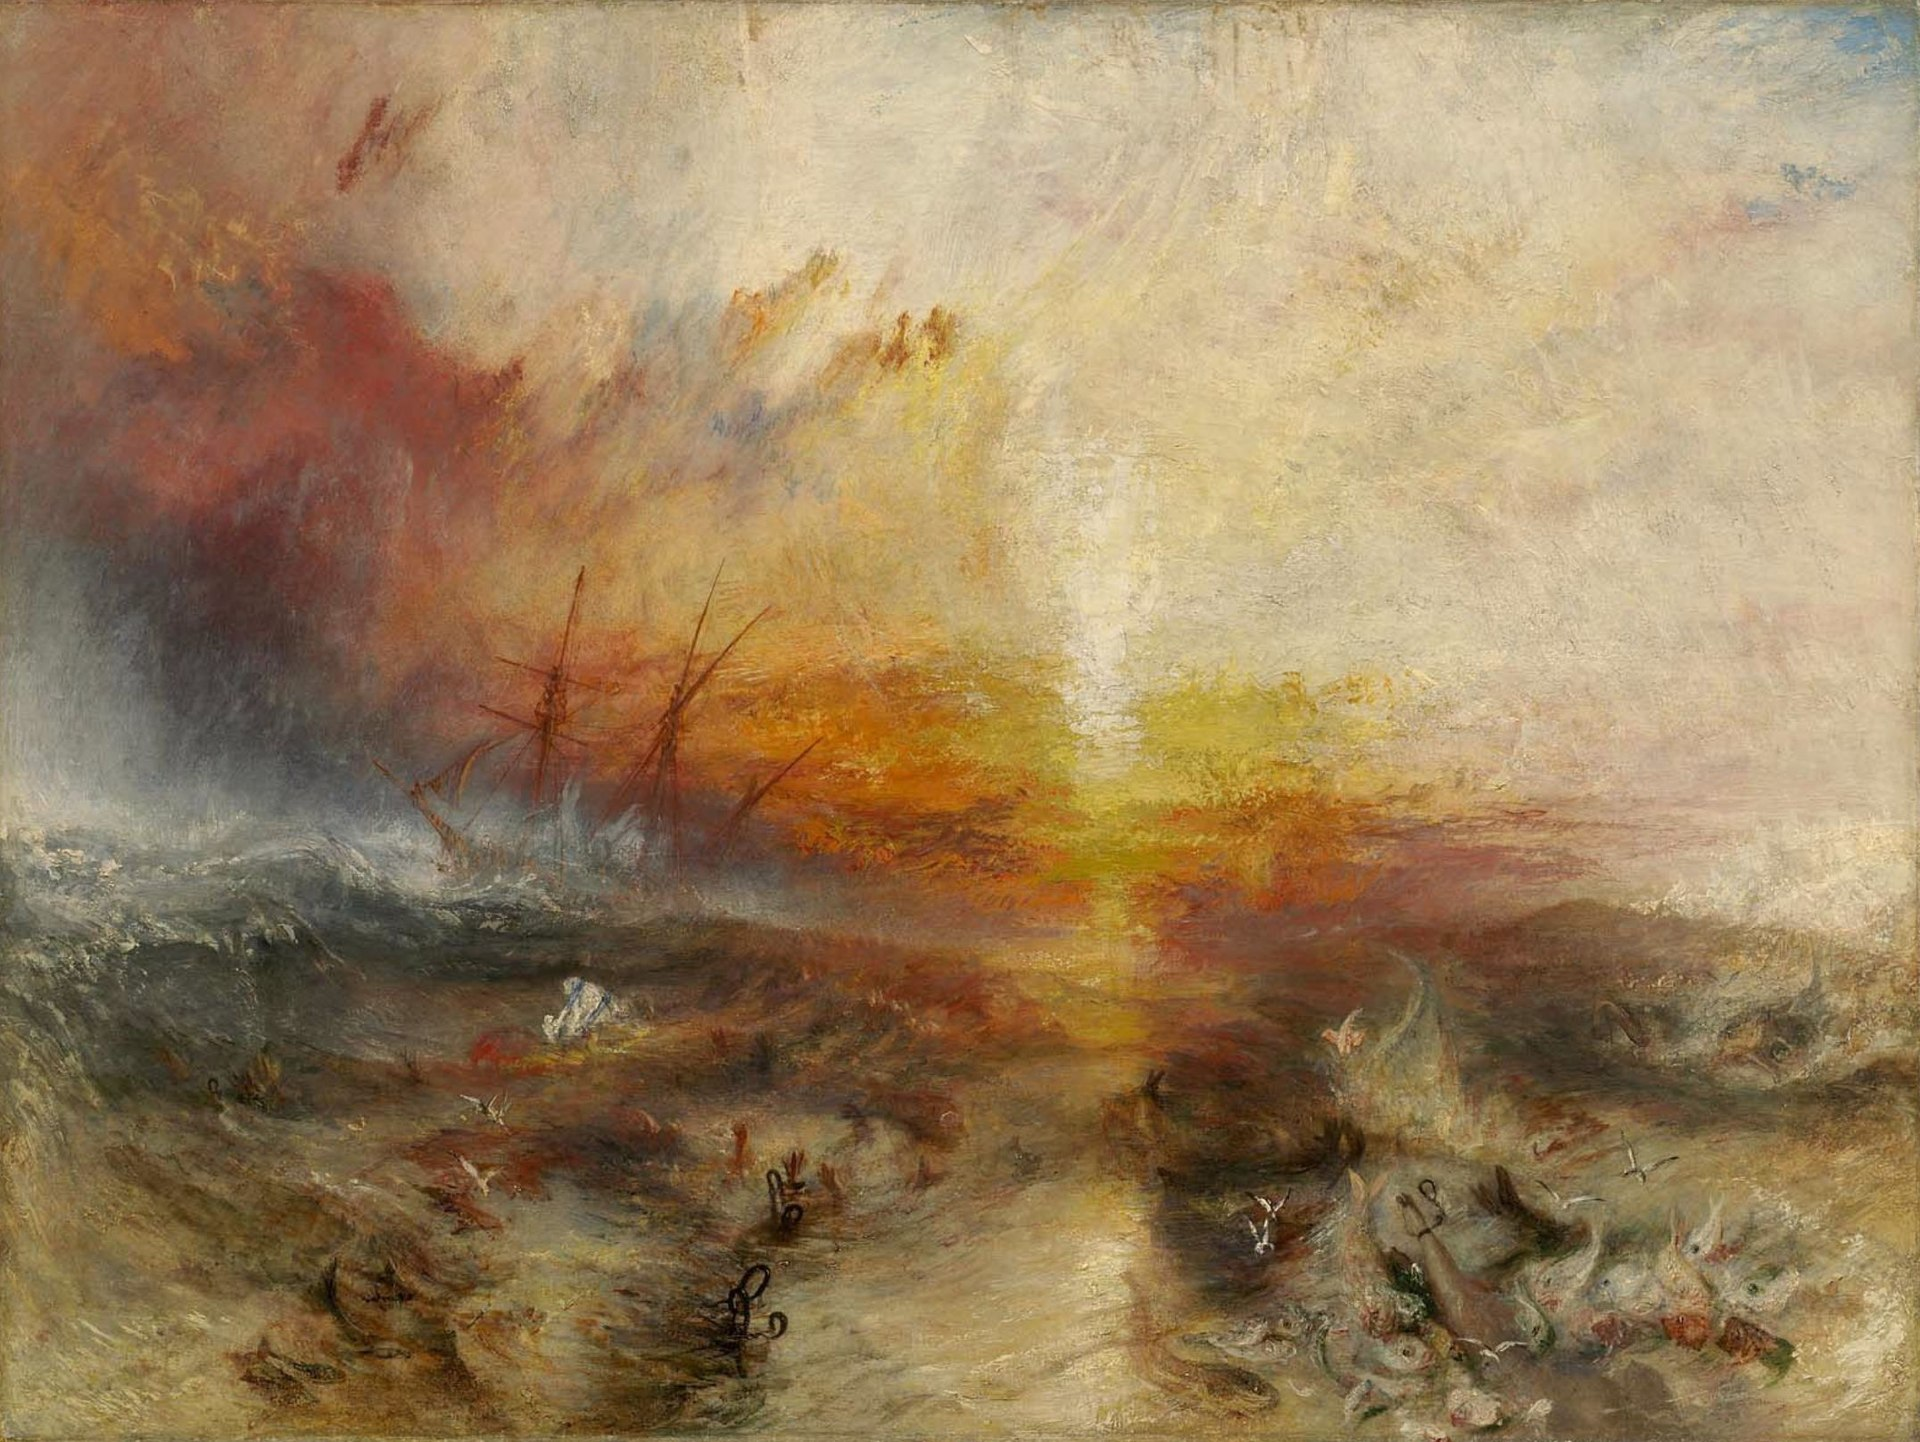 Turner 1840 Slavers throwing overboard the Dead and Dying — Typhoon coming on (The Slave Ship) Boston Mueum of Fine Arts